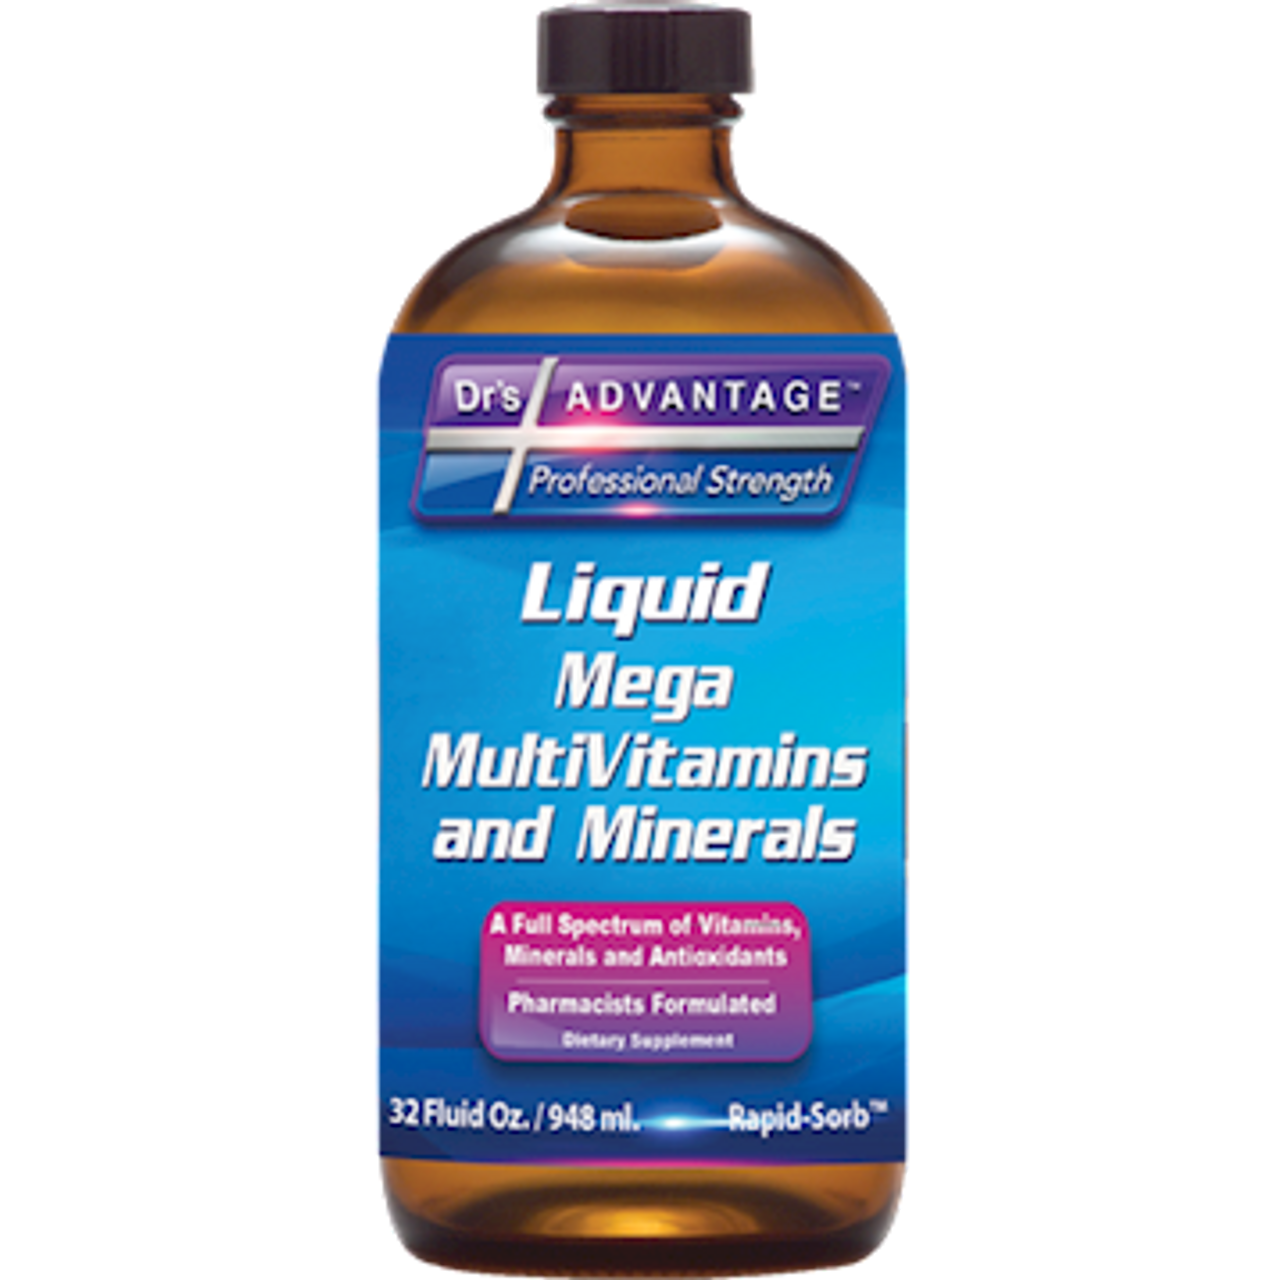 Dr.'s Advantage Liquid Mega Multivitamin and Mineral 32 oz